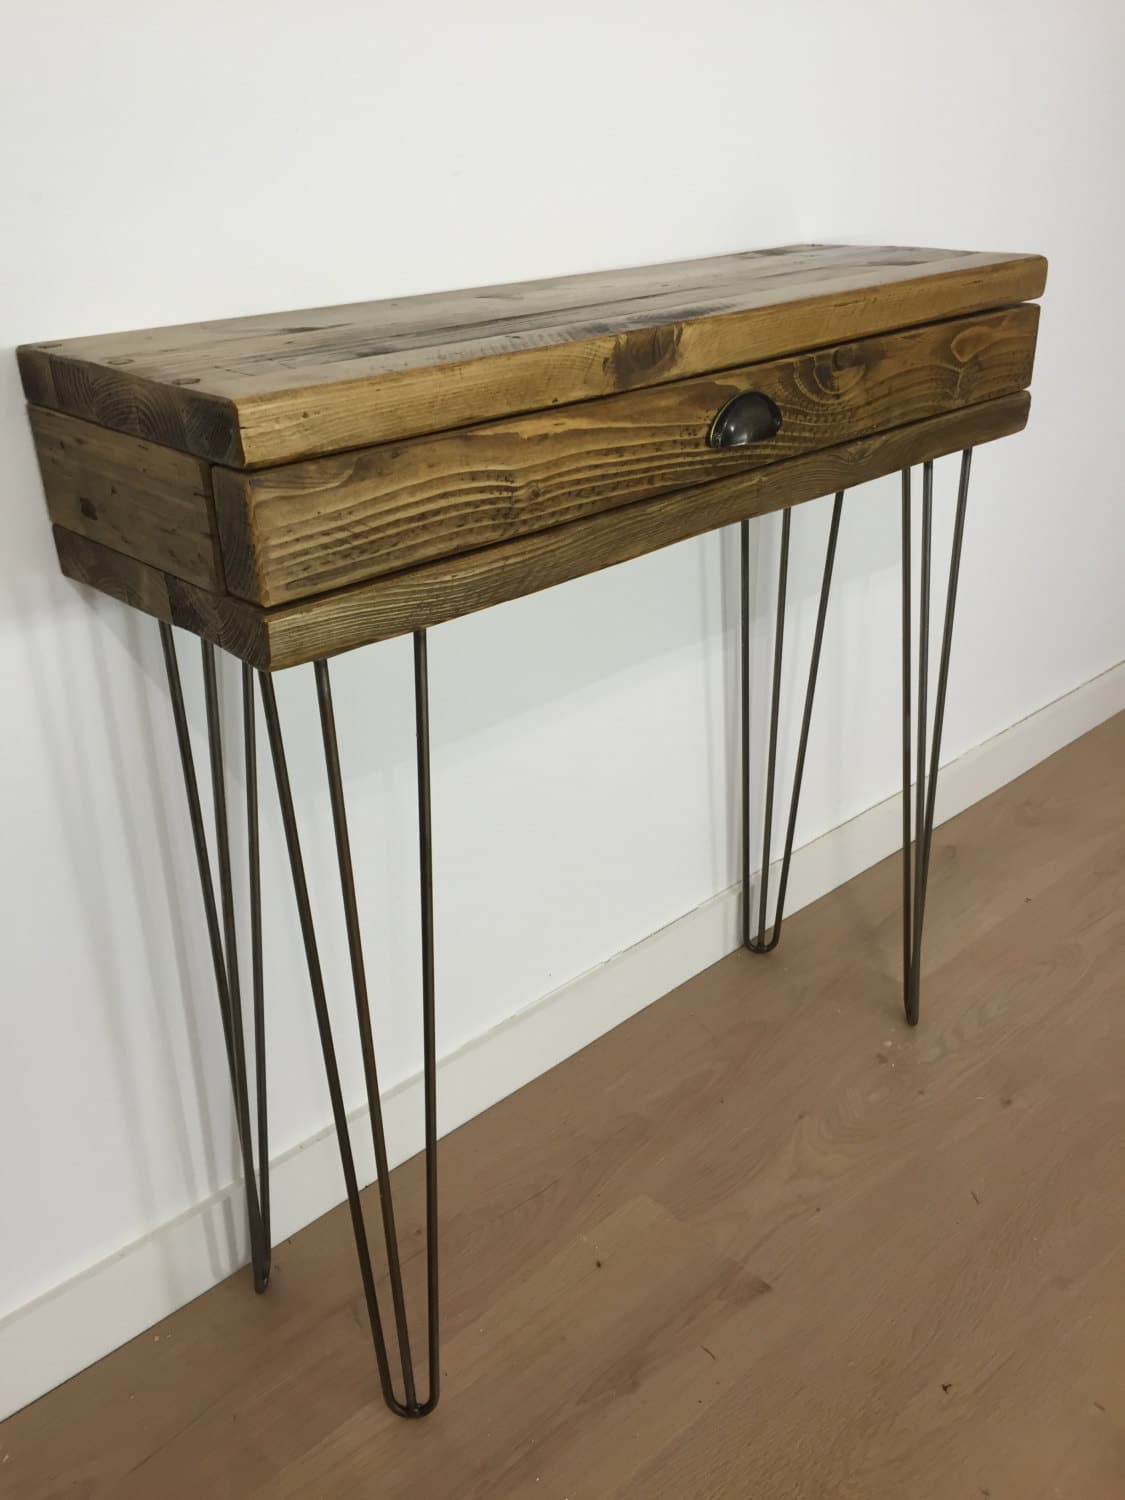 Reclaimed Pine Console Table With Drawer And Metal Hairpin Legs